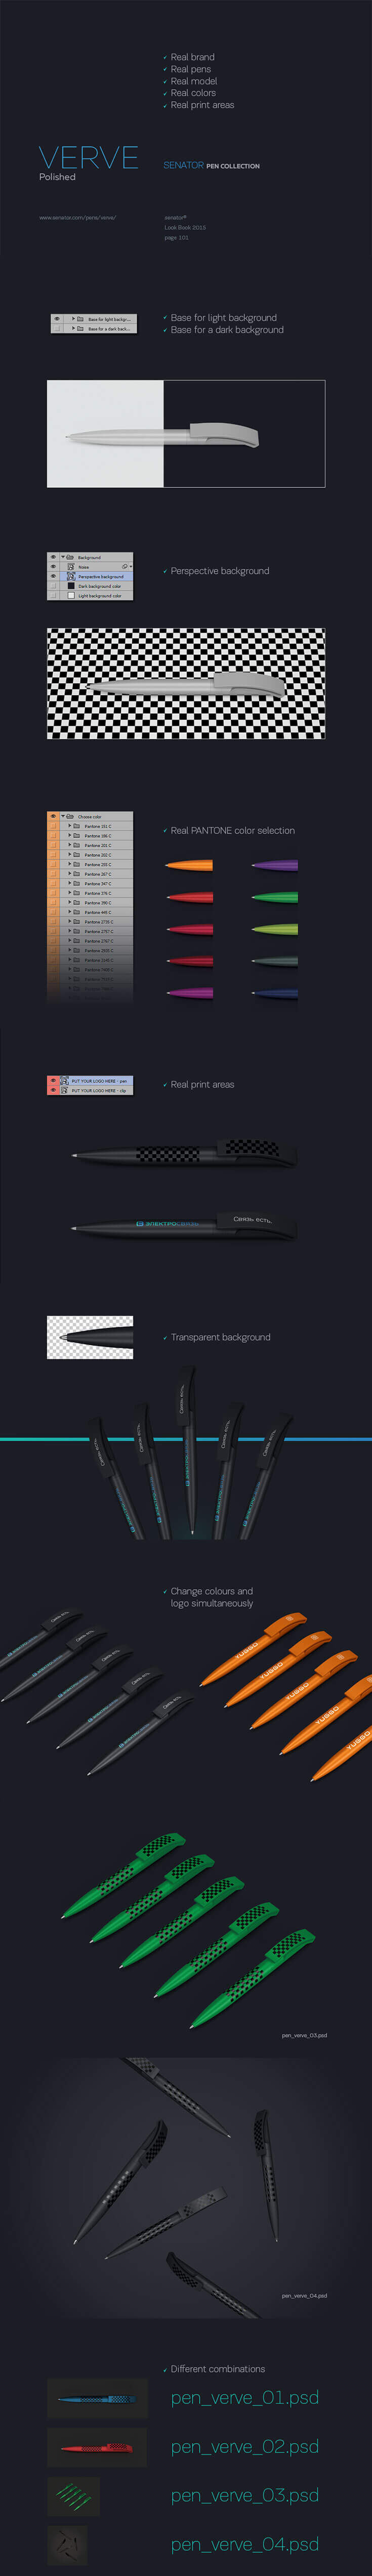 Free Senator #Pen #Mockup #Verve helps you to showcase your own design of a logo in professional appearances. It is available in 4 different styles.